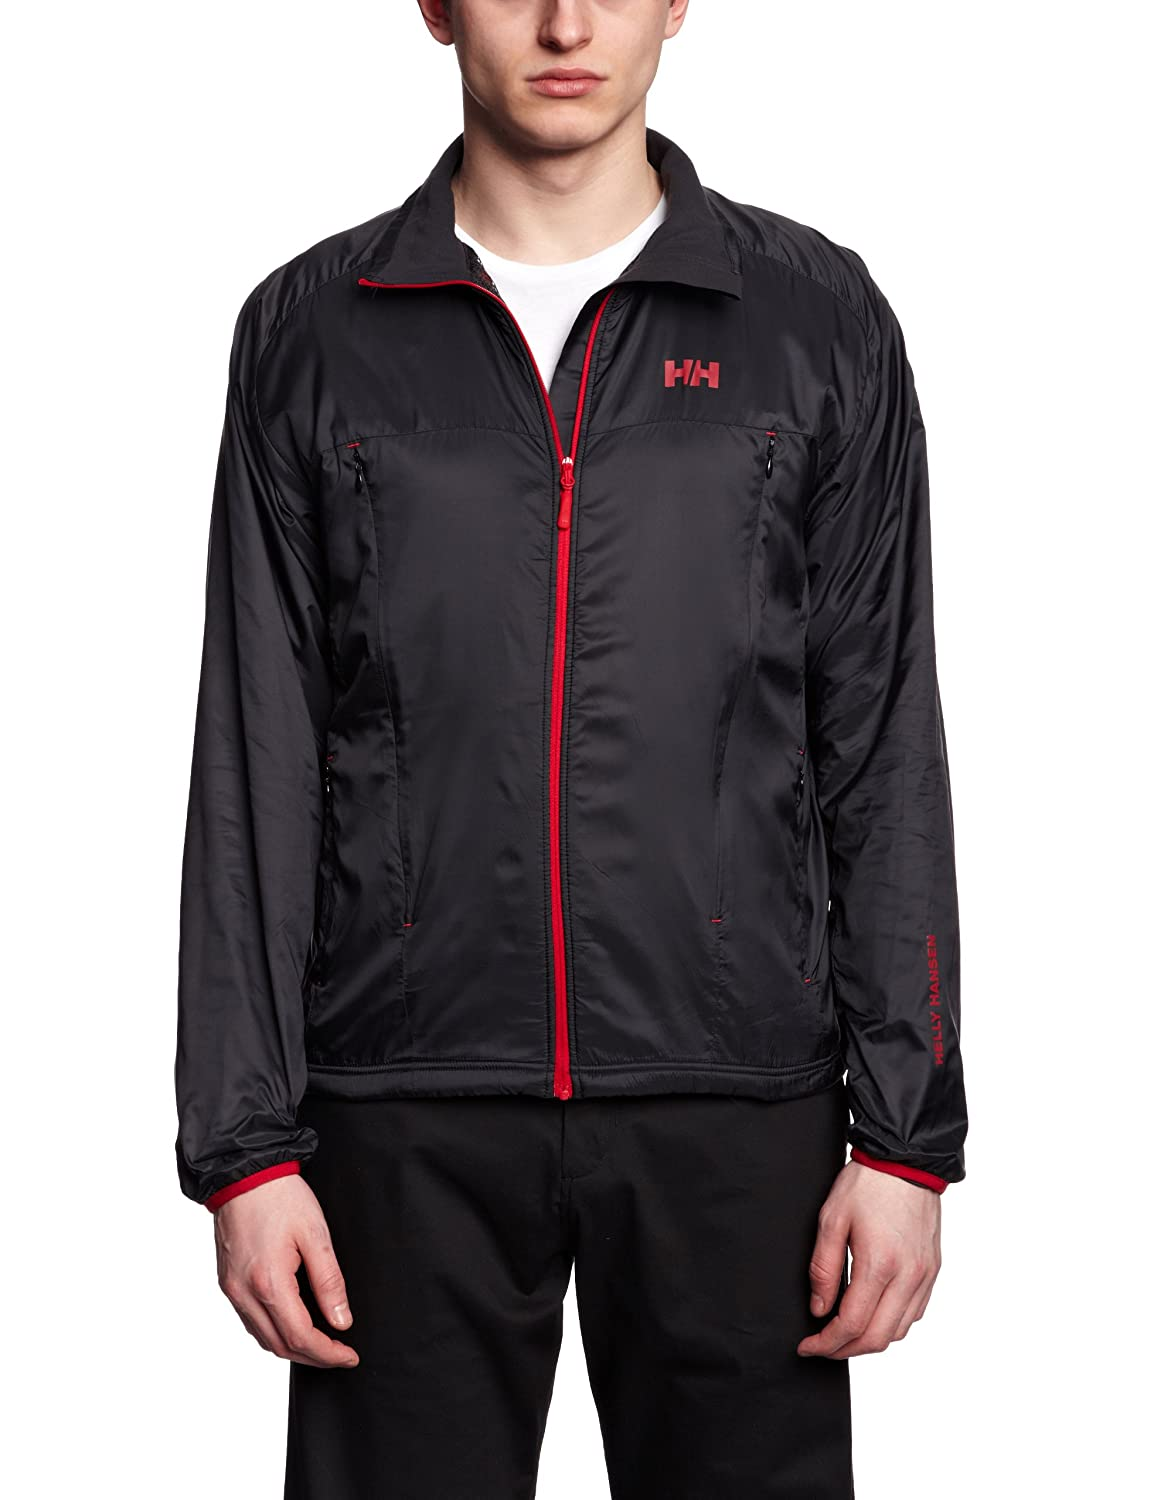 Helly Hansen Herren Jacke H2 Flow Jacket